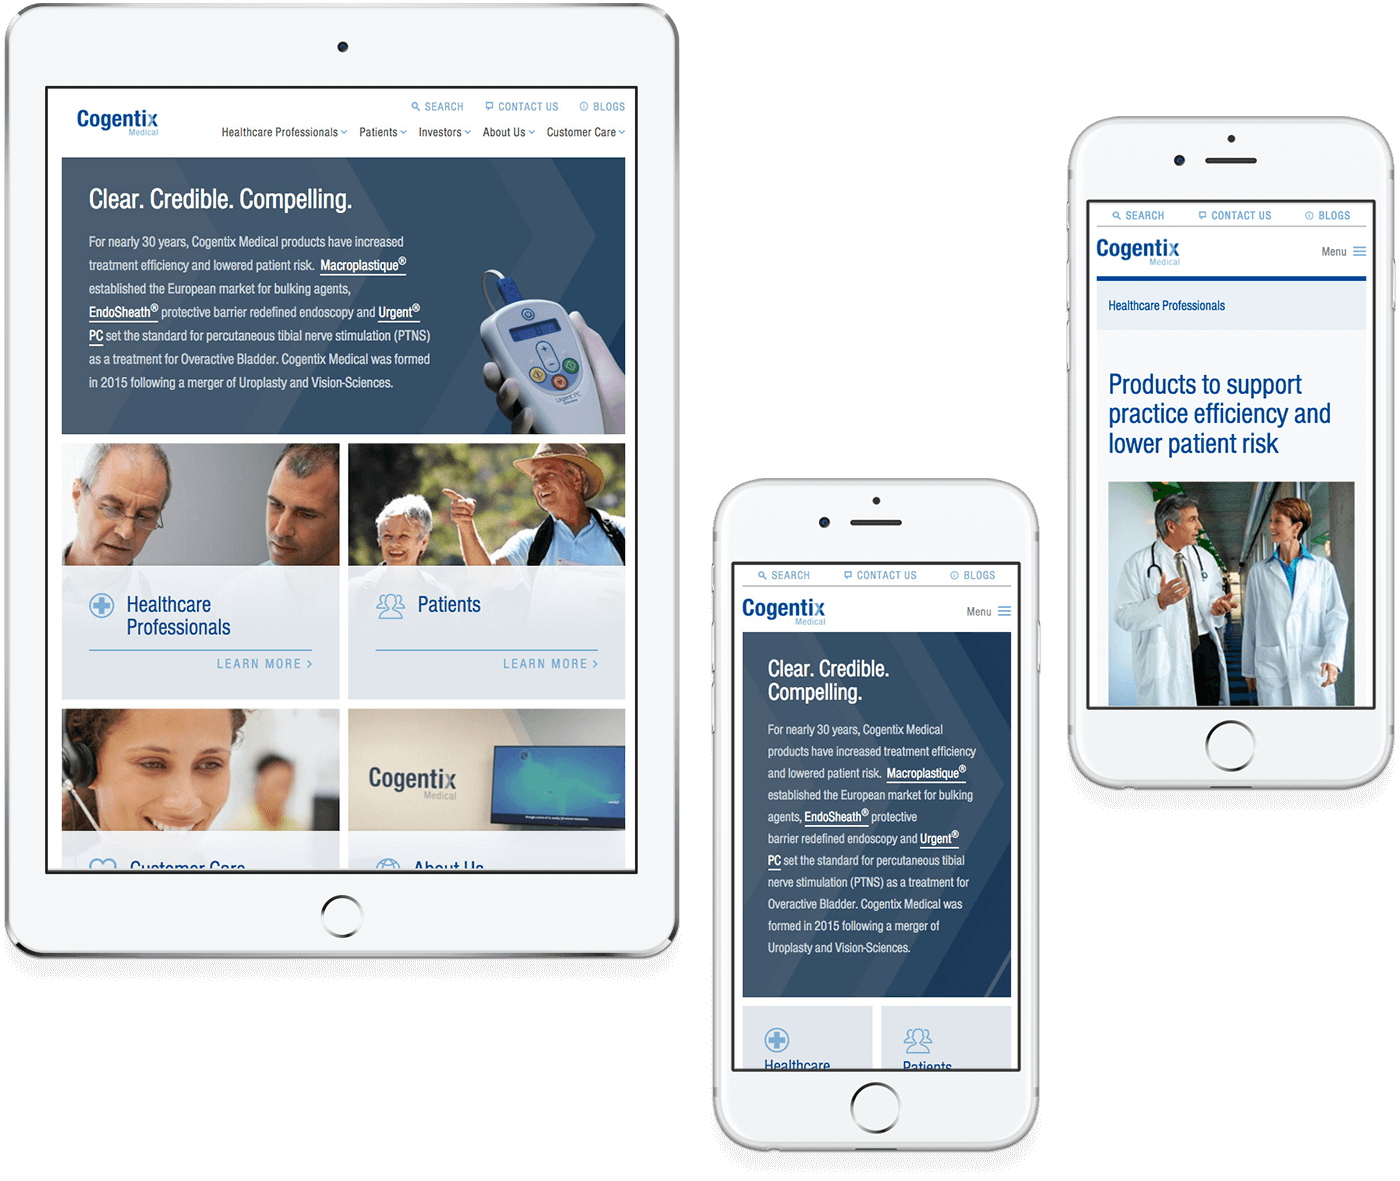 Multiple views of Congentix Medical's website on different mobile devices.